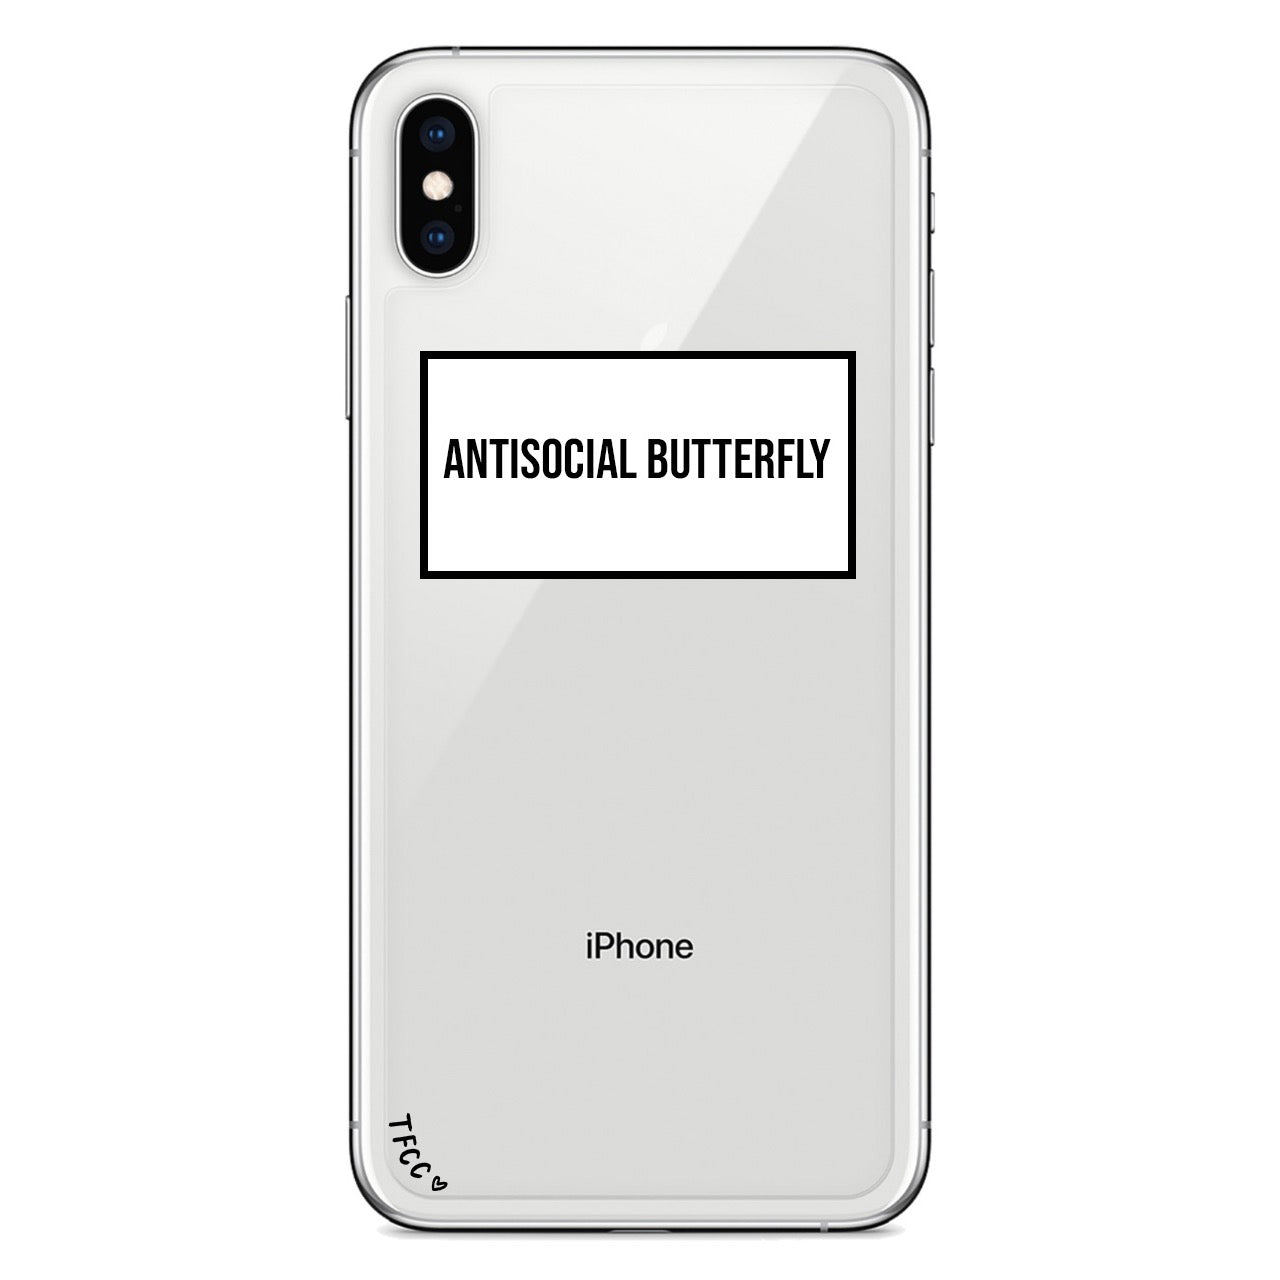 ANTISOCIAL BUTTERFLY SLOGAN CASE - thefonecasecompany